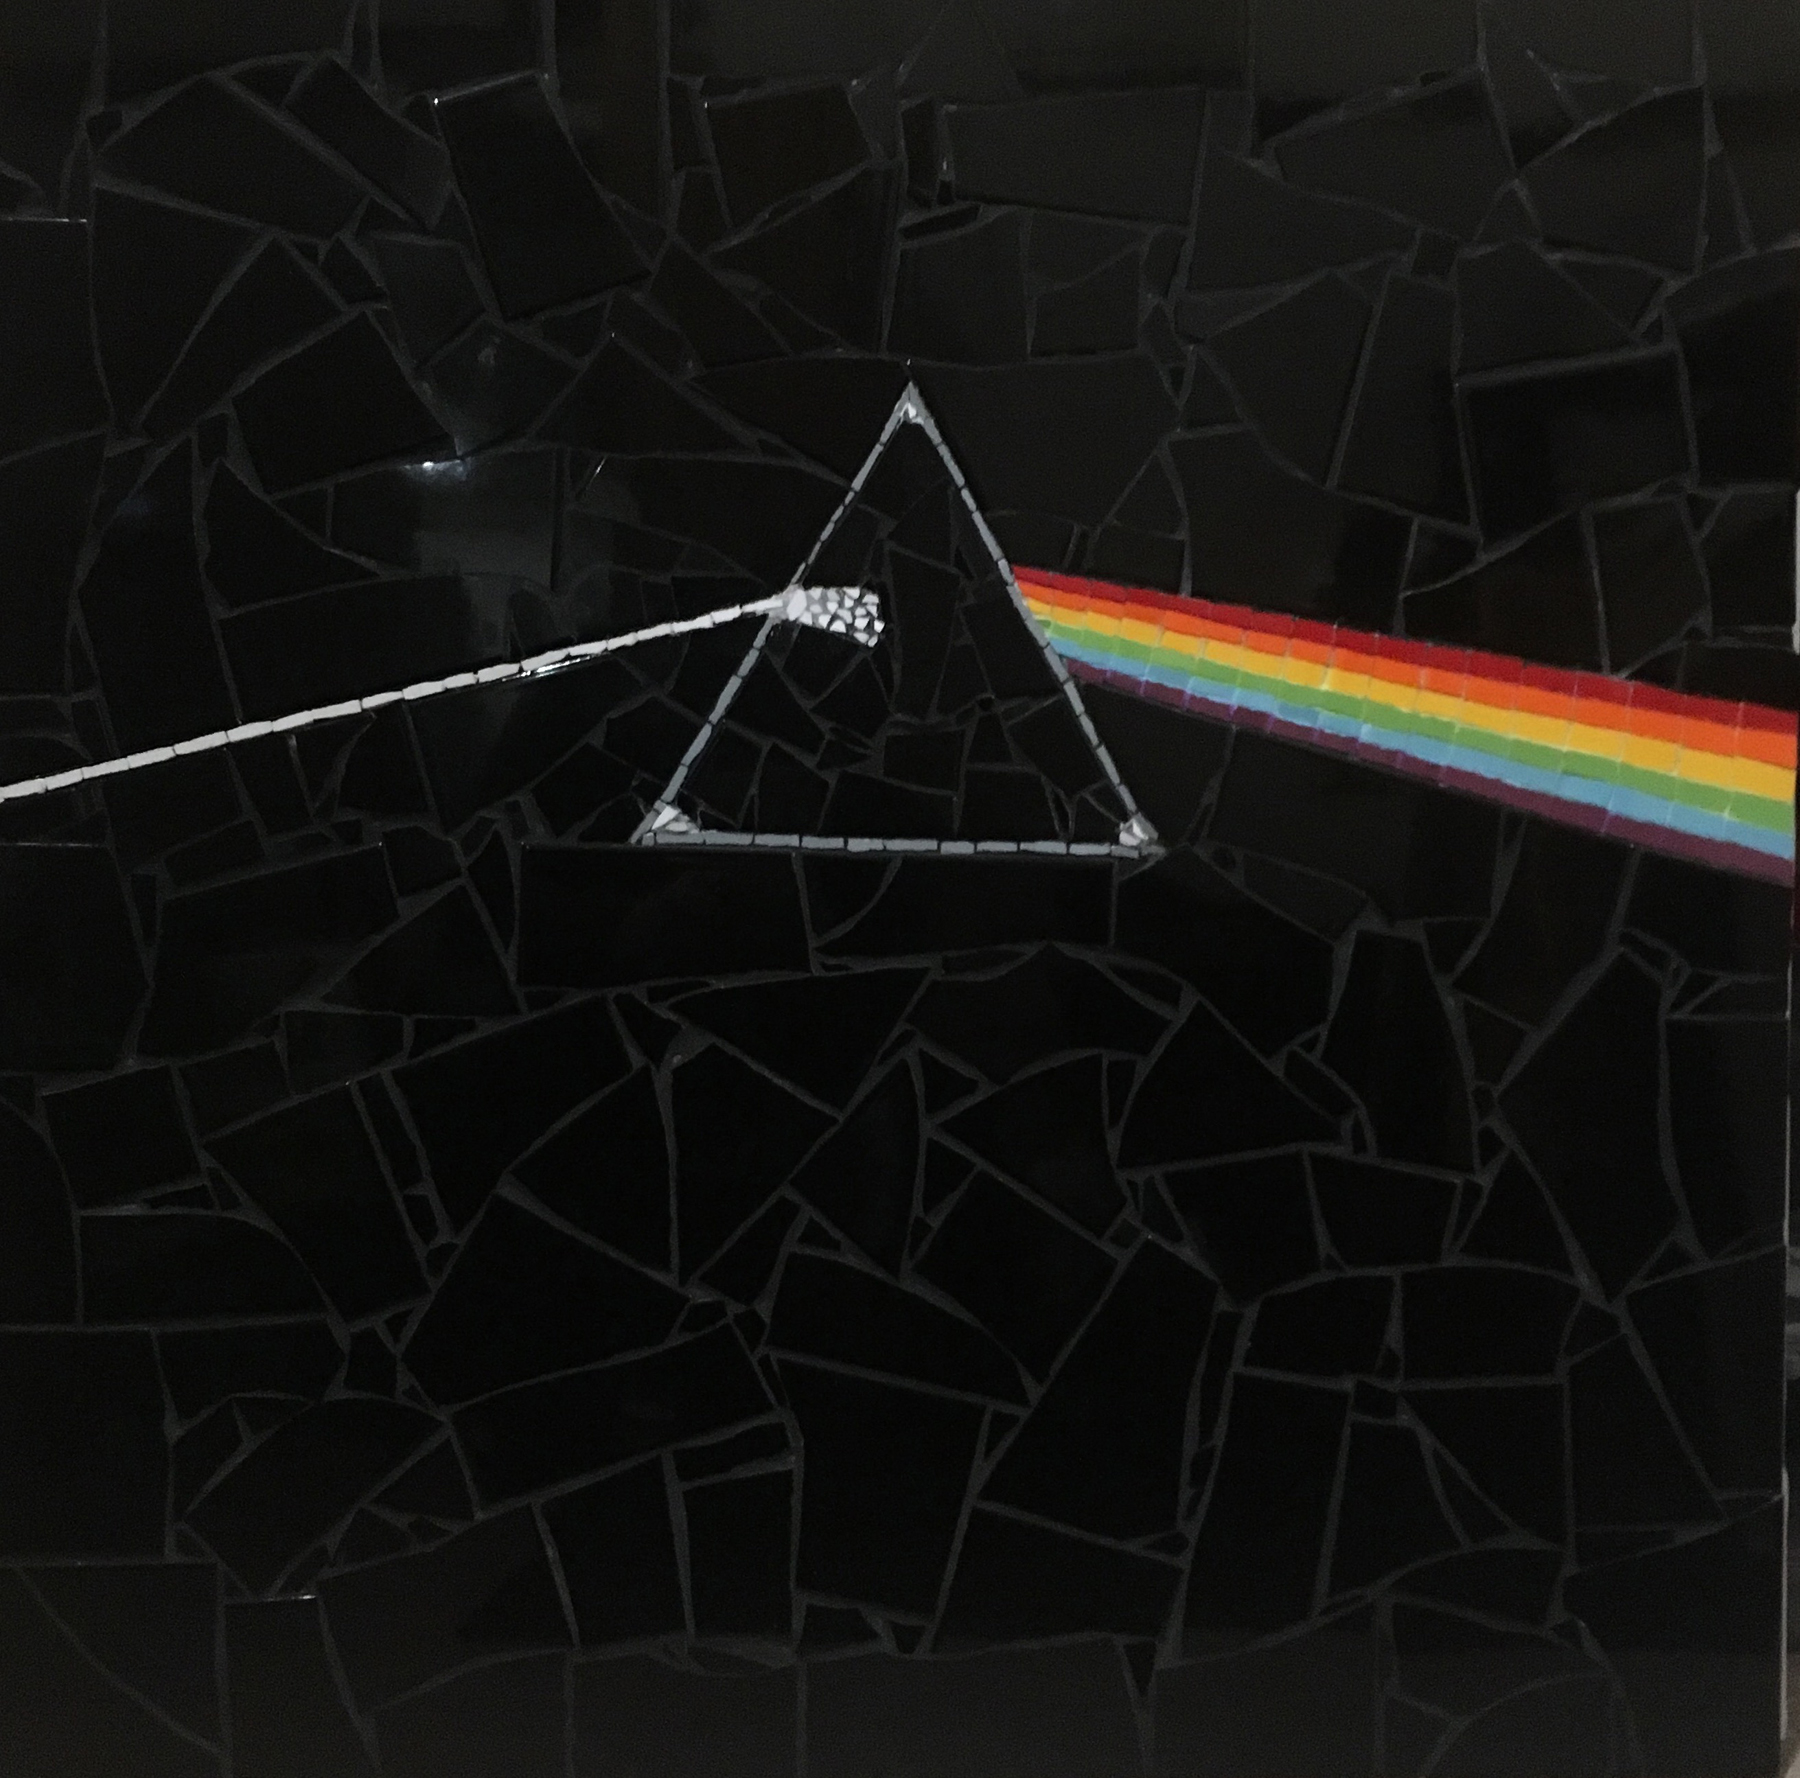 Dark Side Of The Moon by David O'Brien